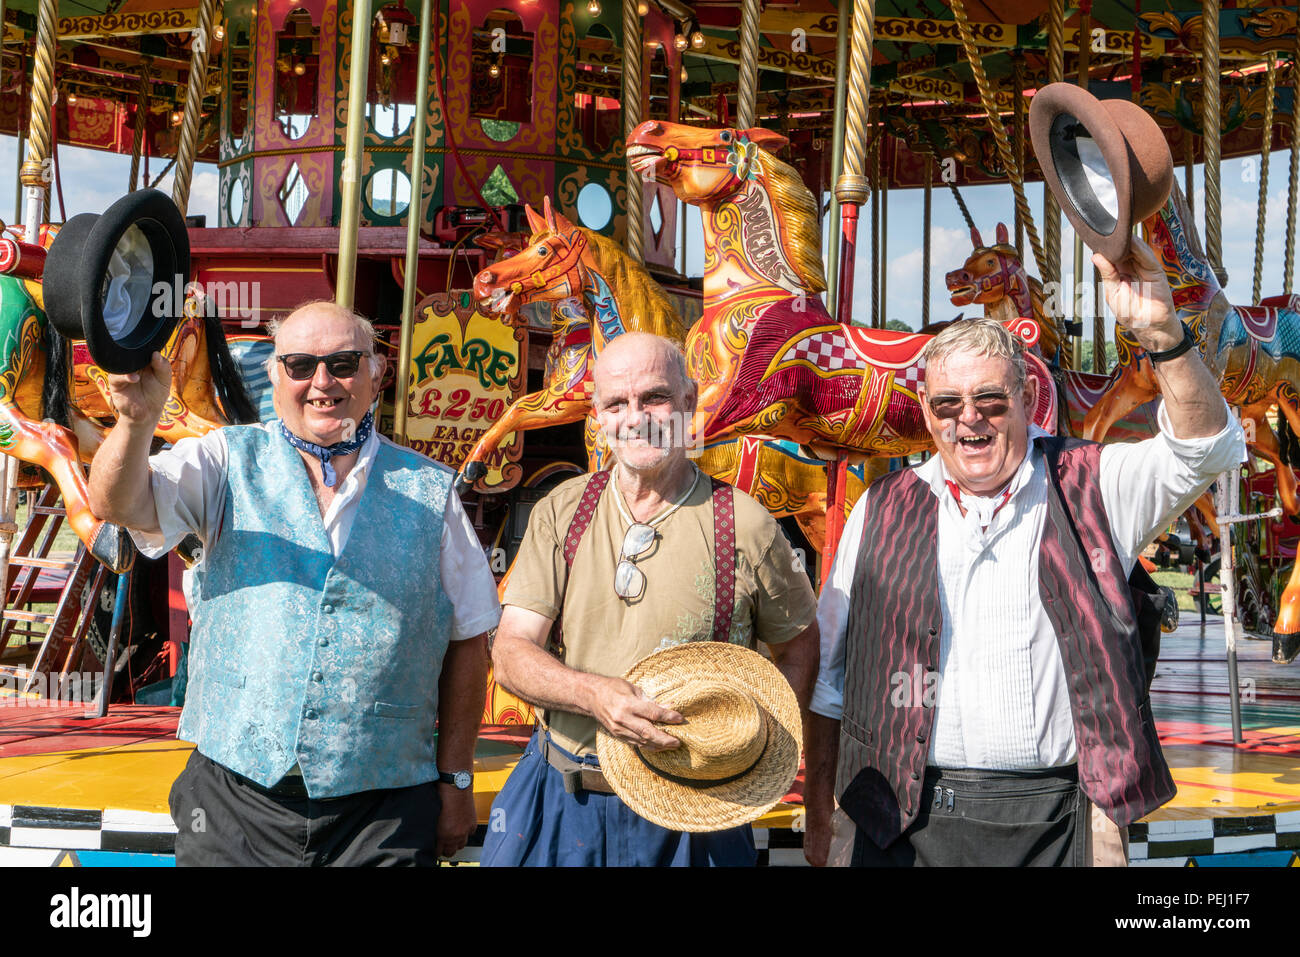 Three fairground workers run the gallopers (merry go round) at a Harris' traditional travelling fair in Wiston Sussex, they wave their hats and smile. - Stock Image